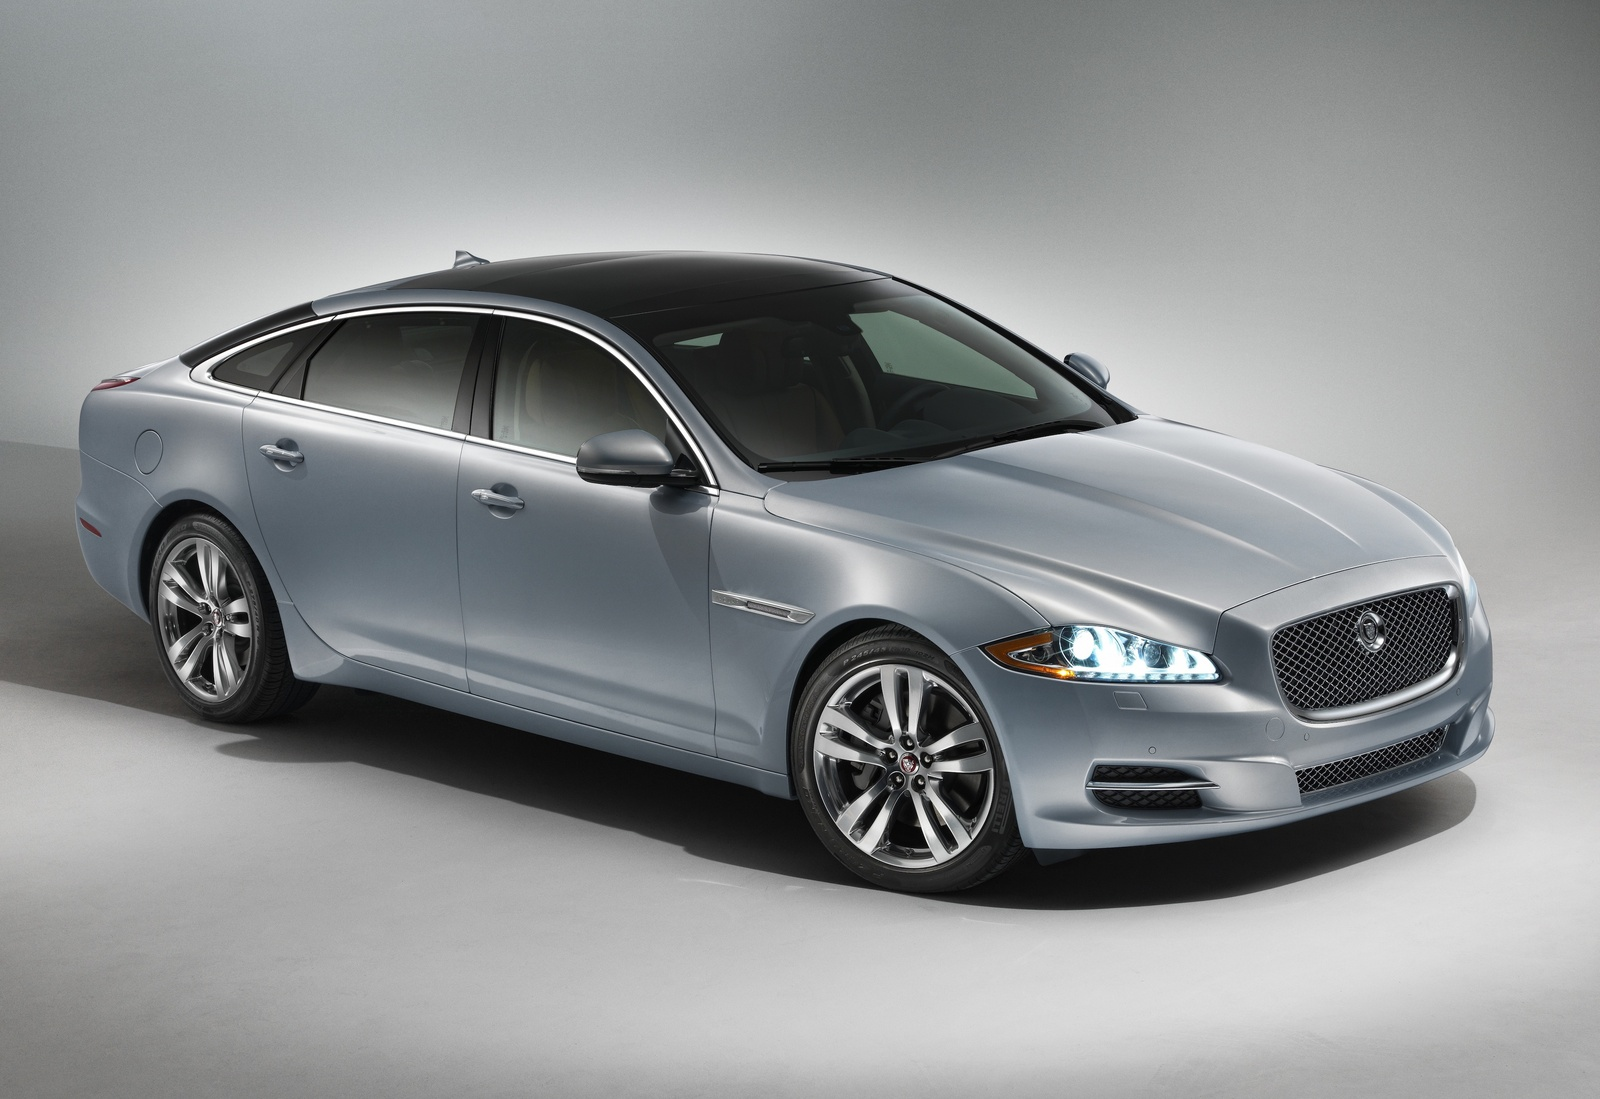 2014 jaguar xj series review cargurus. Black Bedroom Furniture Sets. Home Design Ideas